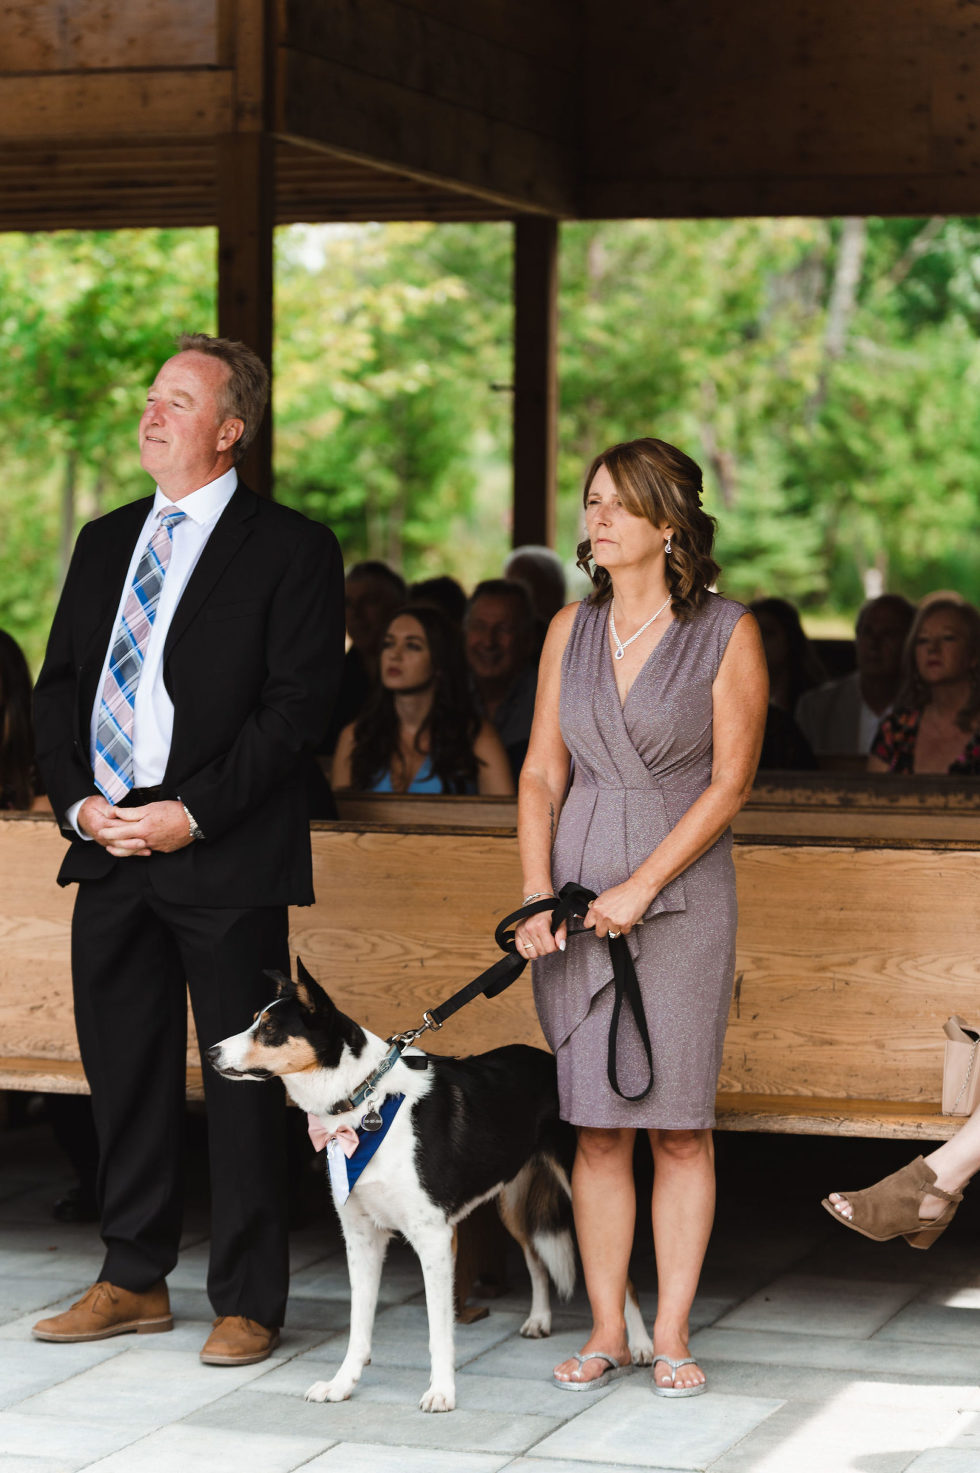 mother of the bride holding their dog on a leash in front of the wedding guests as they watch the couple get married at Carvers cottage in Pickering